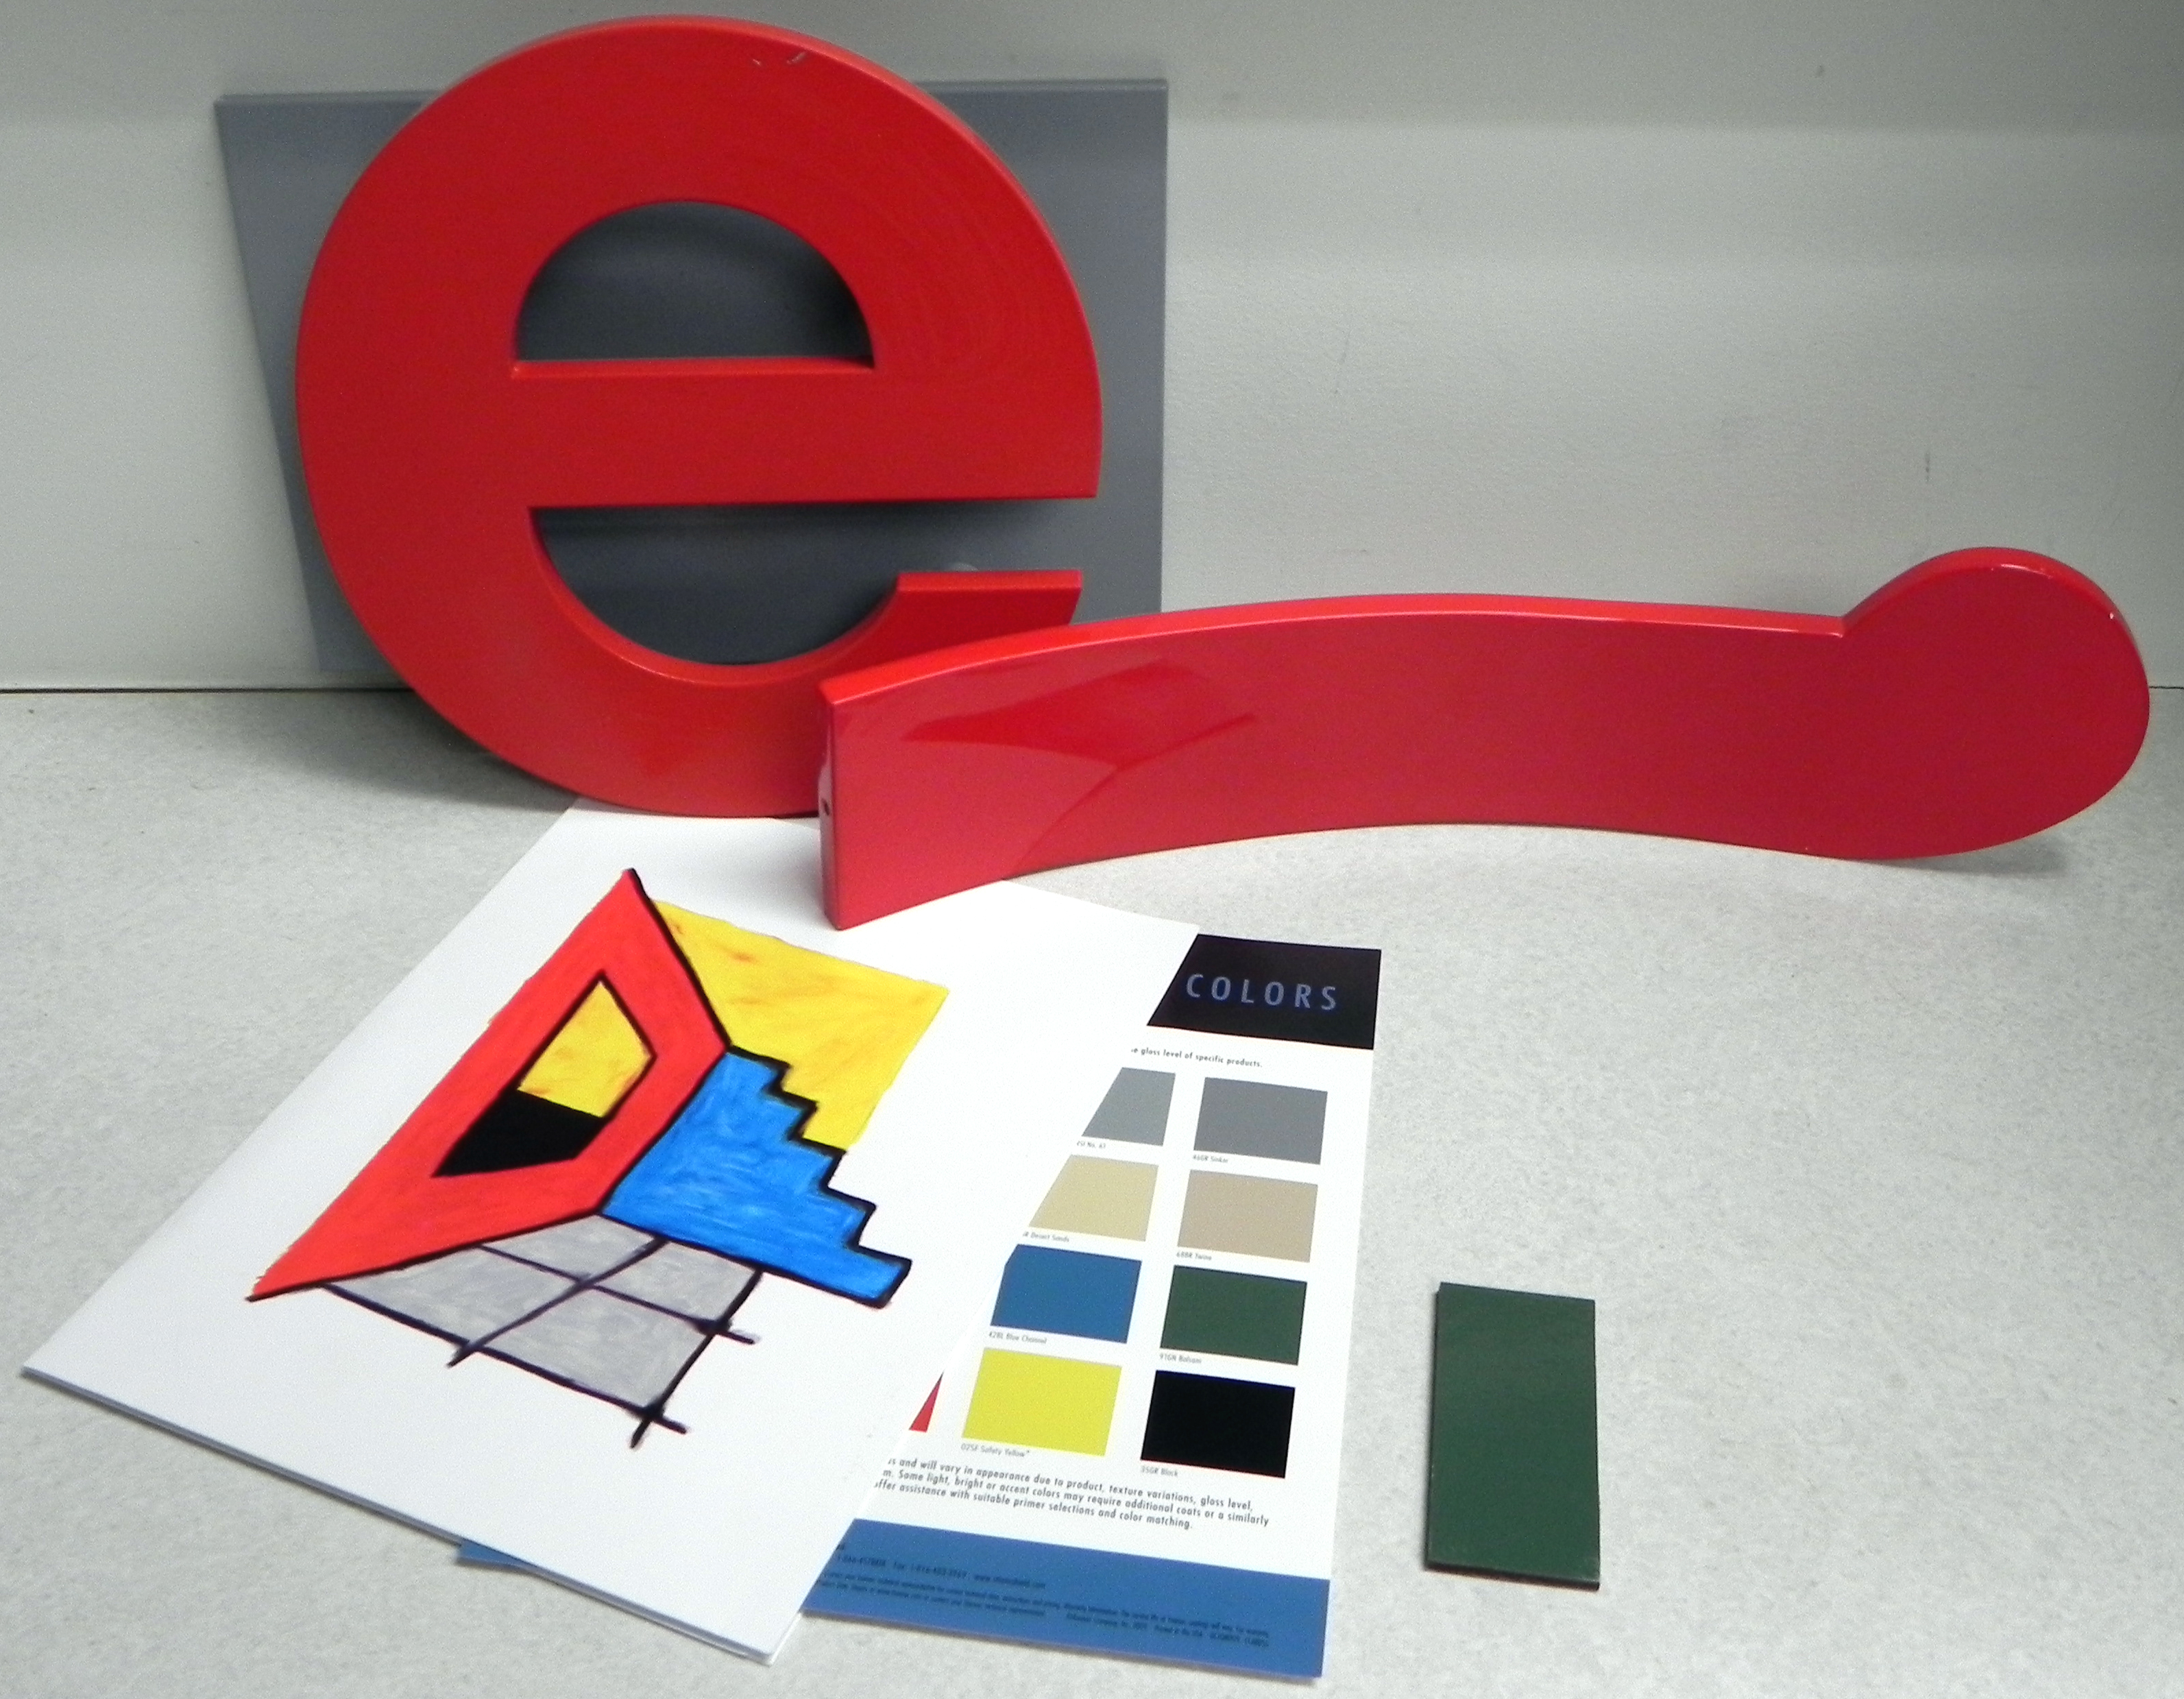 Photograph of paint systems and color samples for outdoor public artwork.